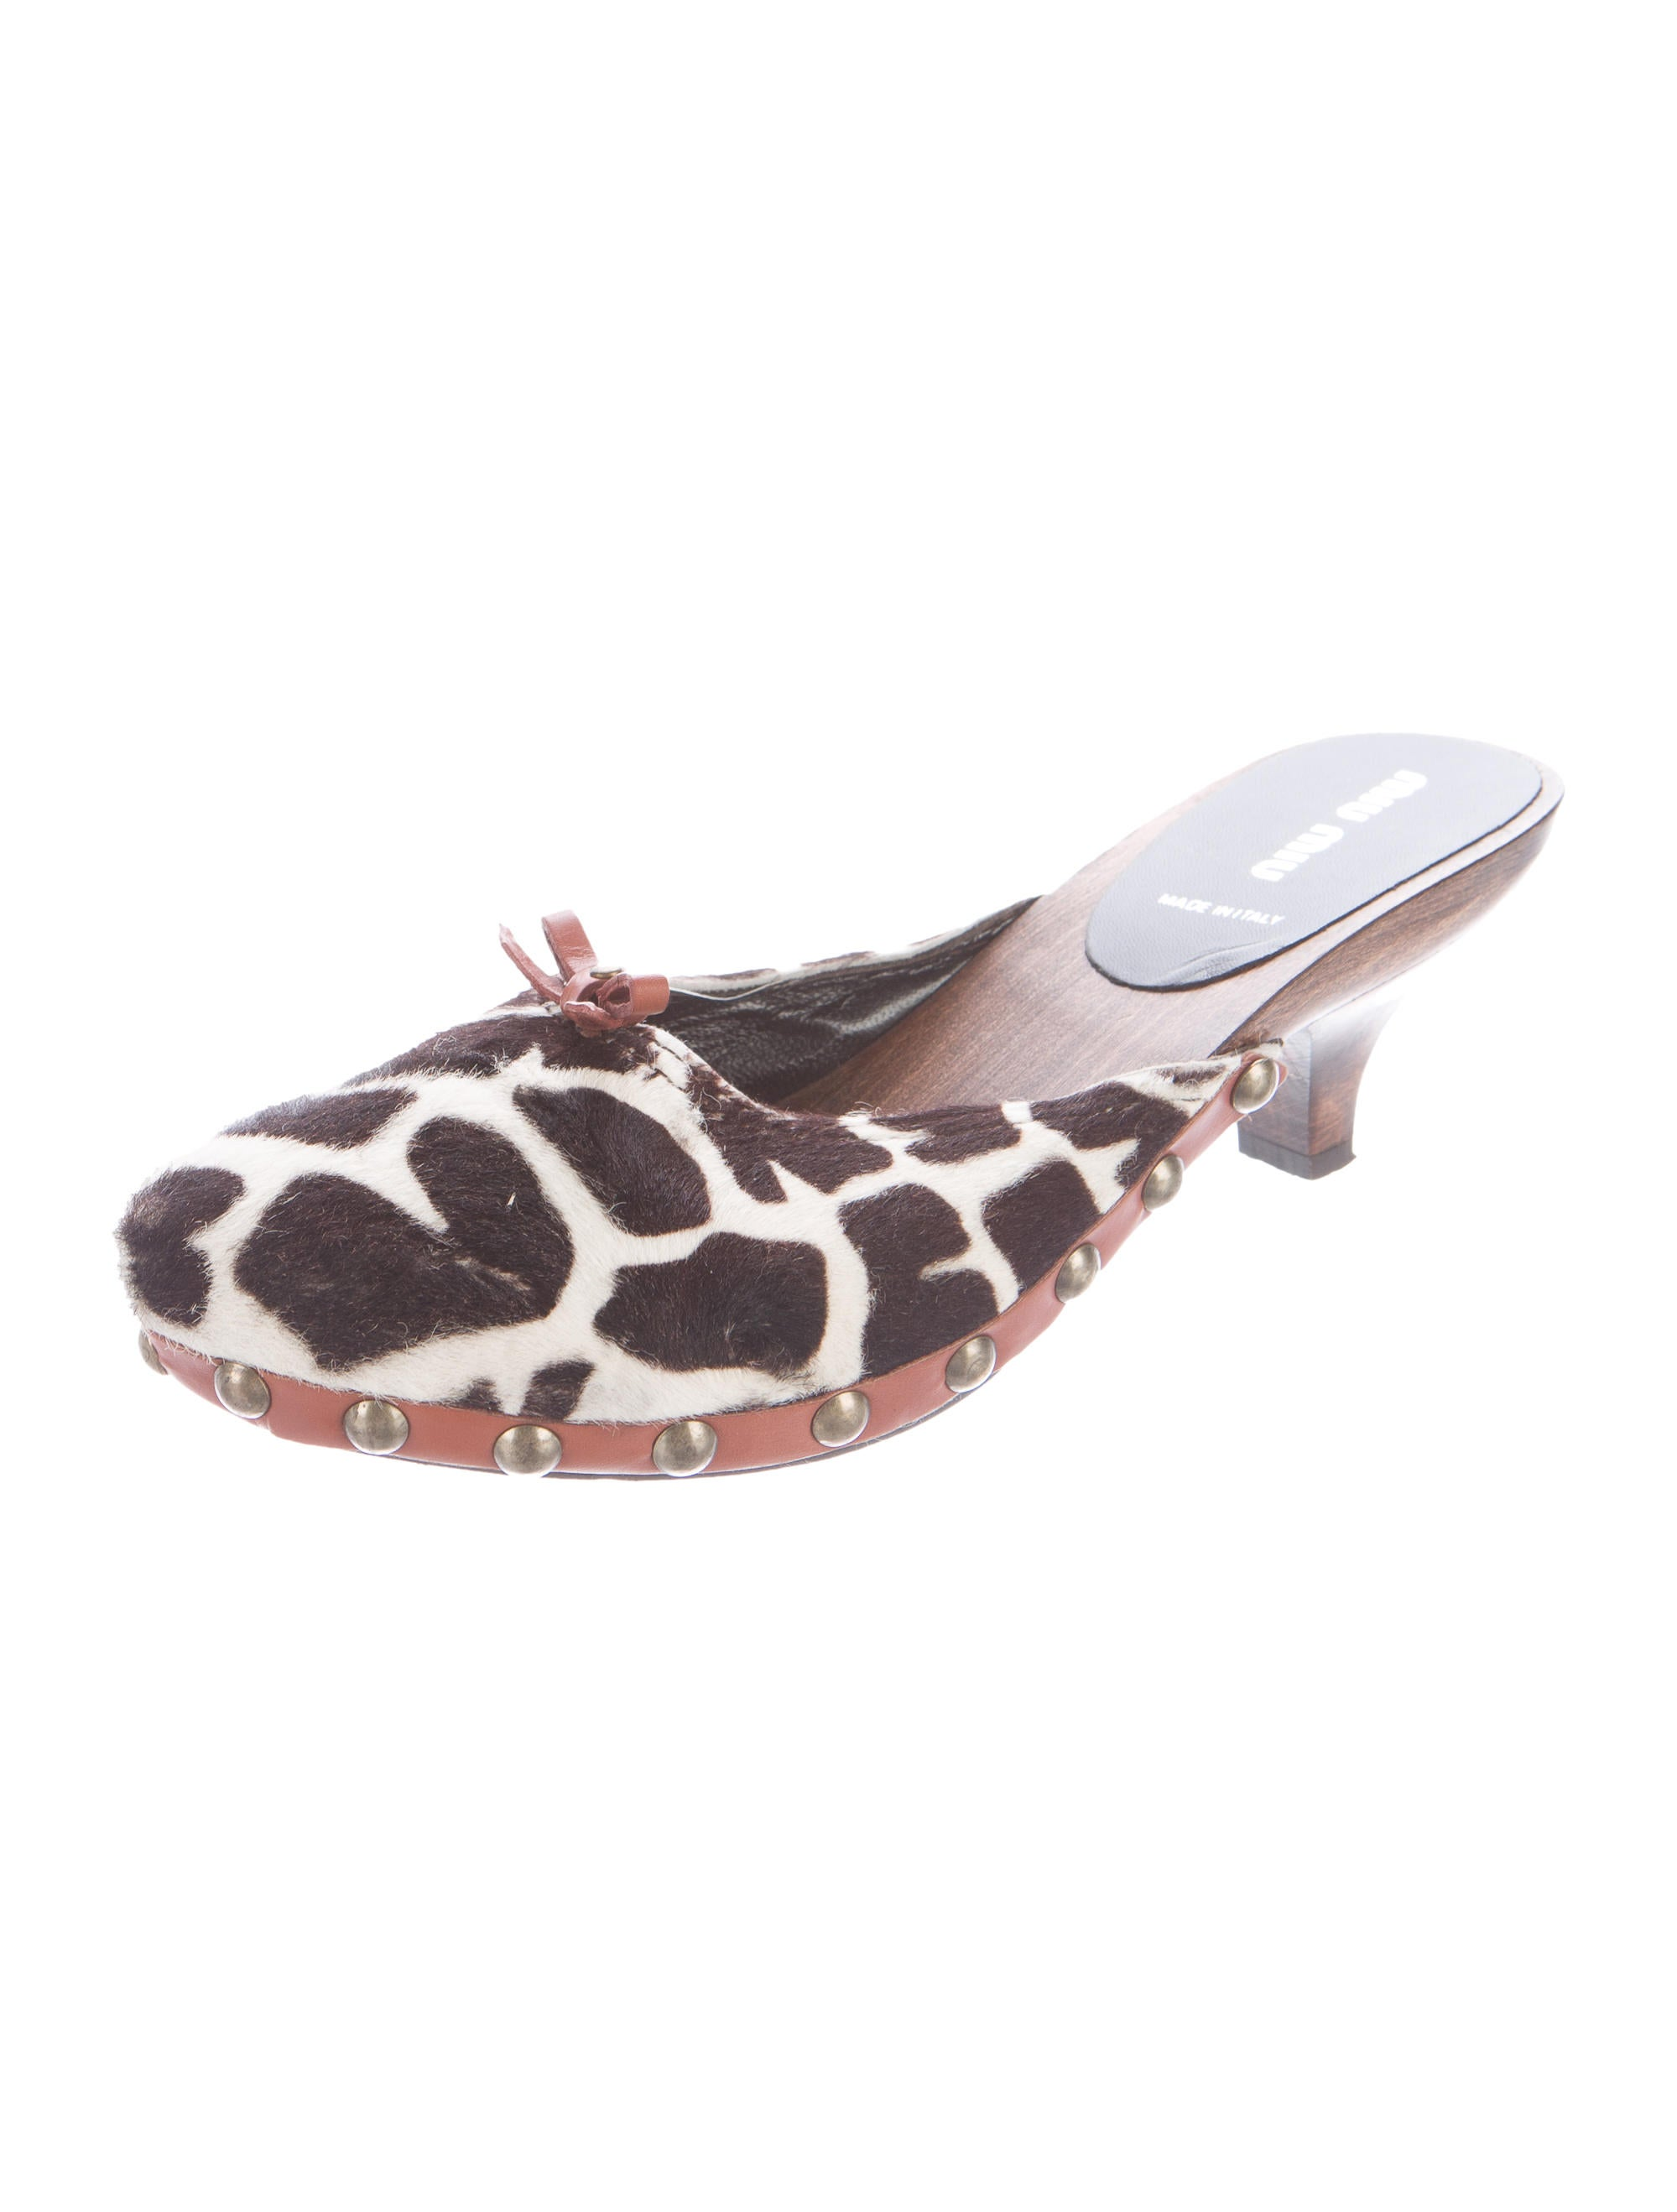 Online shopping from a great selection at Clothing, Shoes & Jewelry Store. From The Community. Summer Dress Clearance Women's Sleeveless Beach Giraffe Print Tank White Short Mini Dress $ 8 4 out of 5 stars 1. Luvable Friends. Girl's Print Canvas Sneaker Casual Sneaker. from $ 4 99 Prime. out of 5 stars